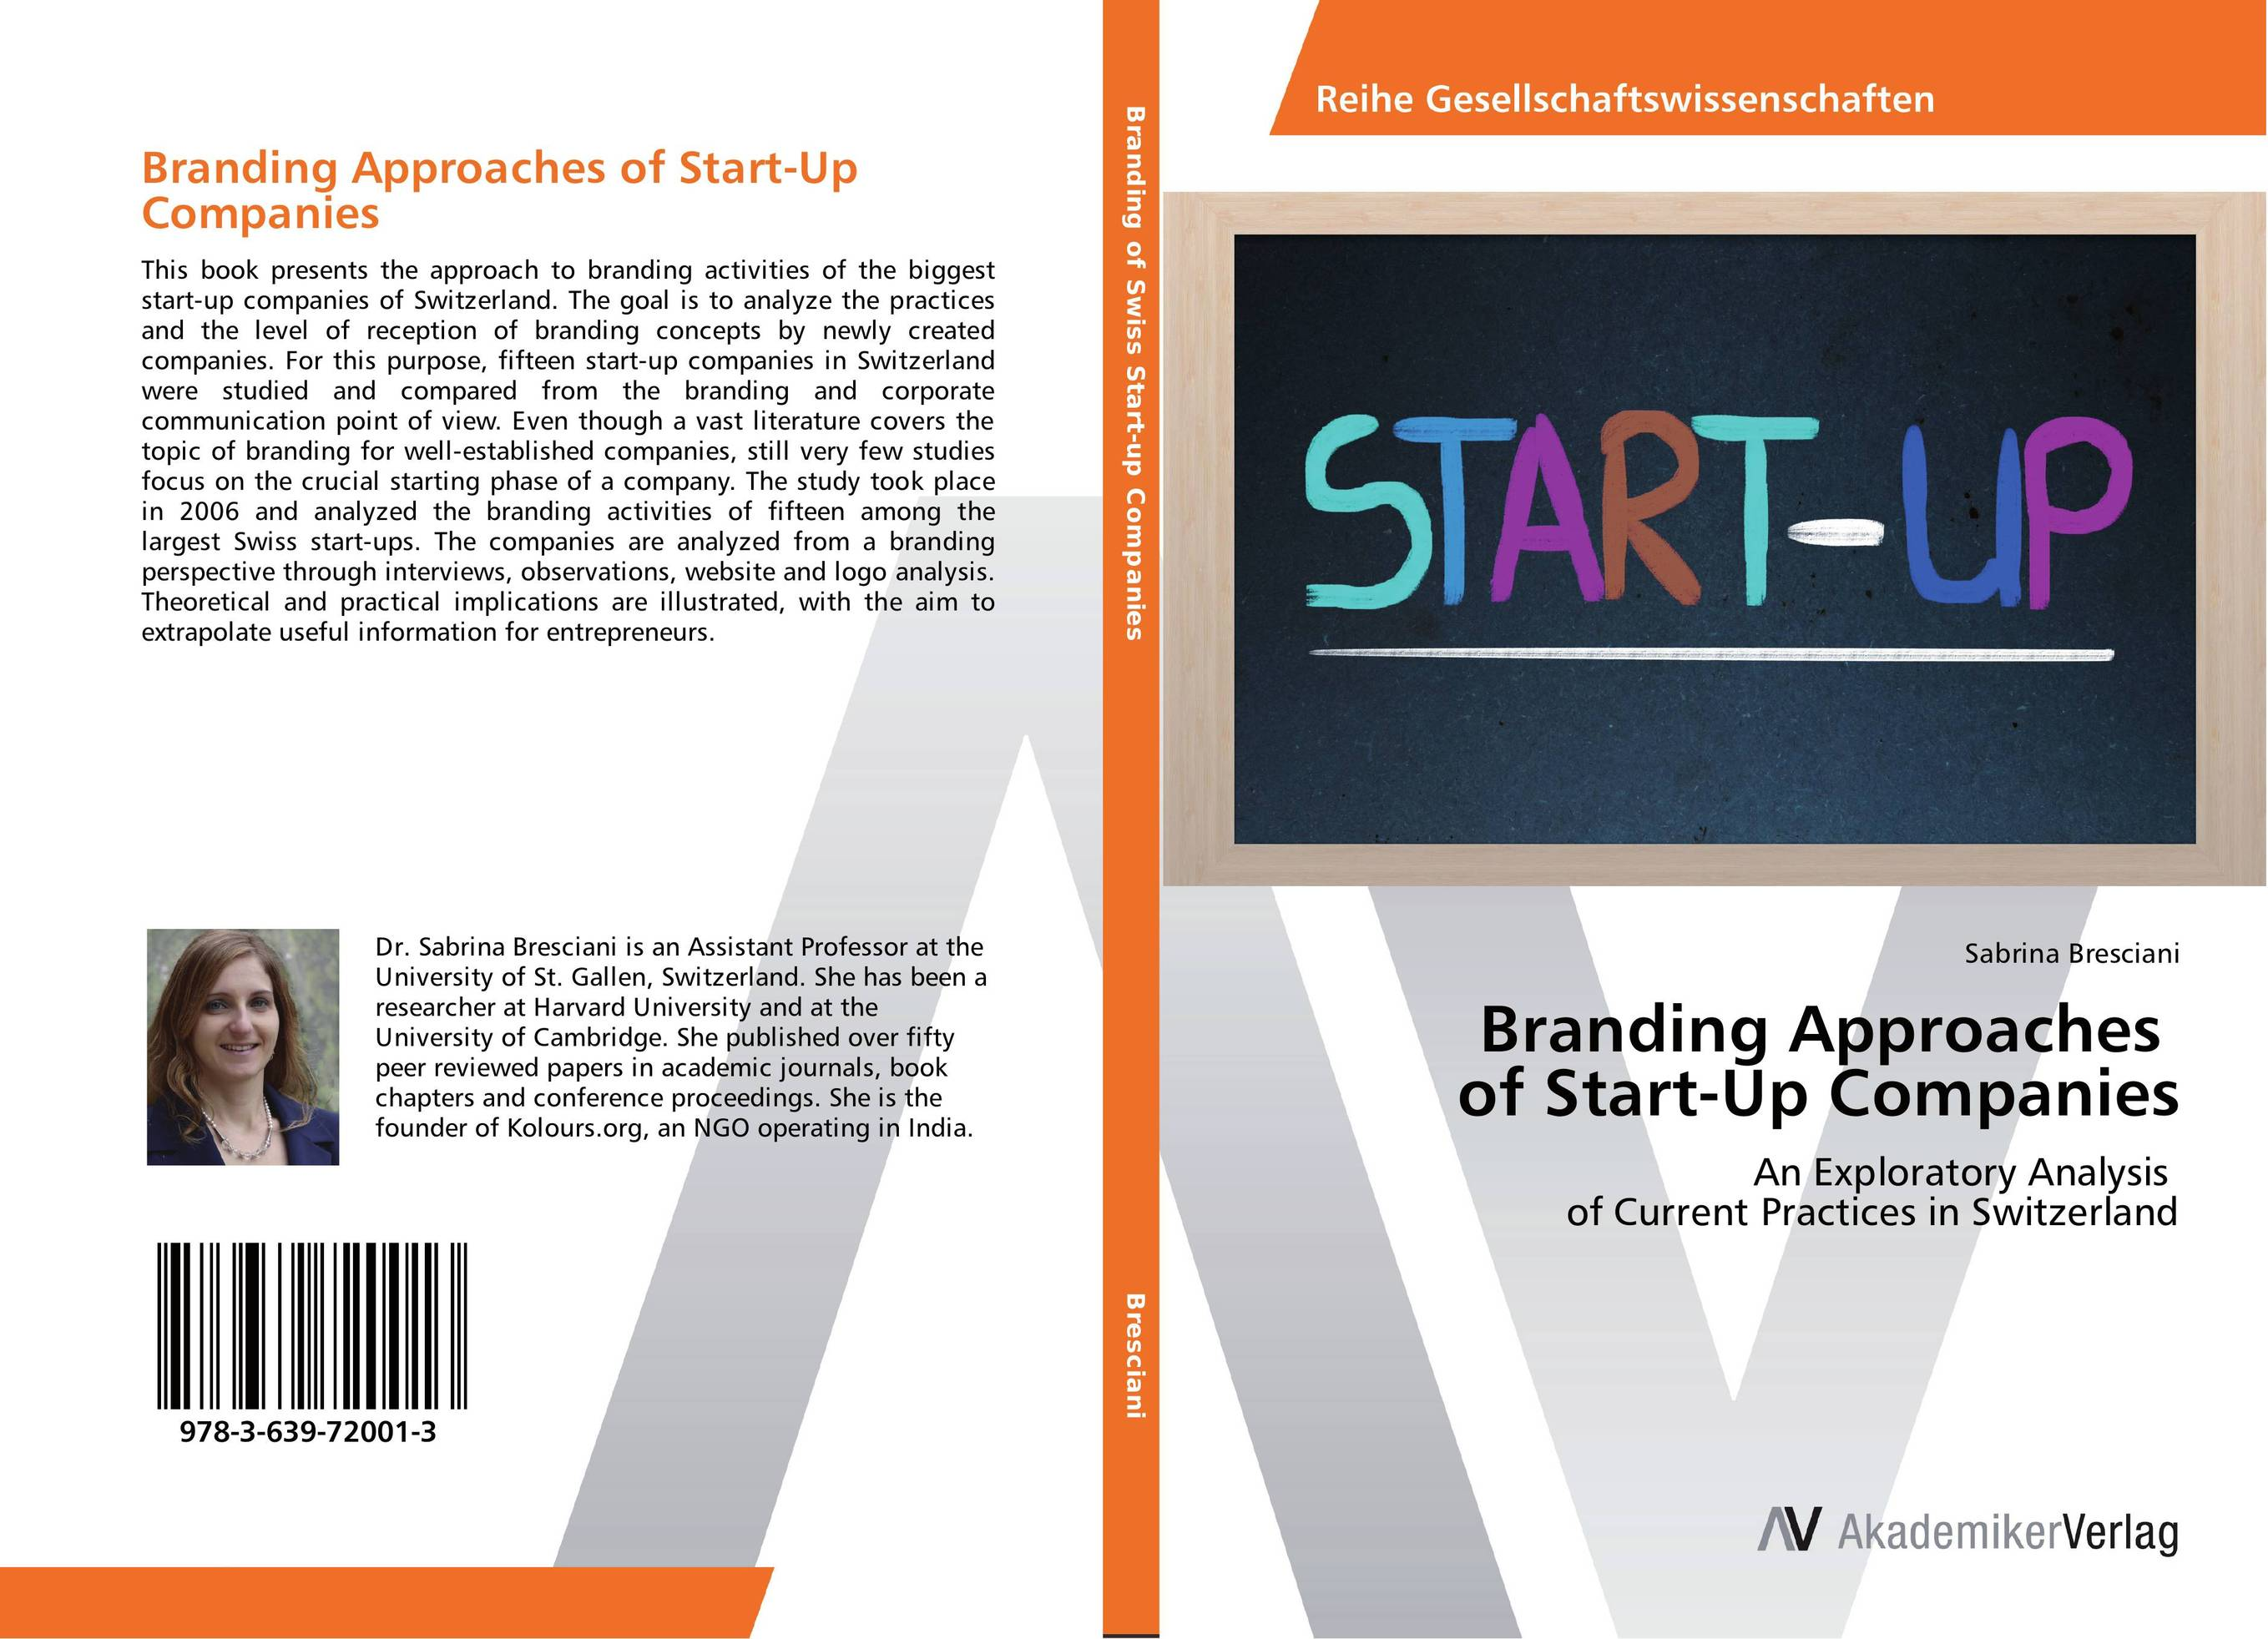 Branding Approaches of Start-Up Companies